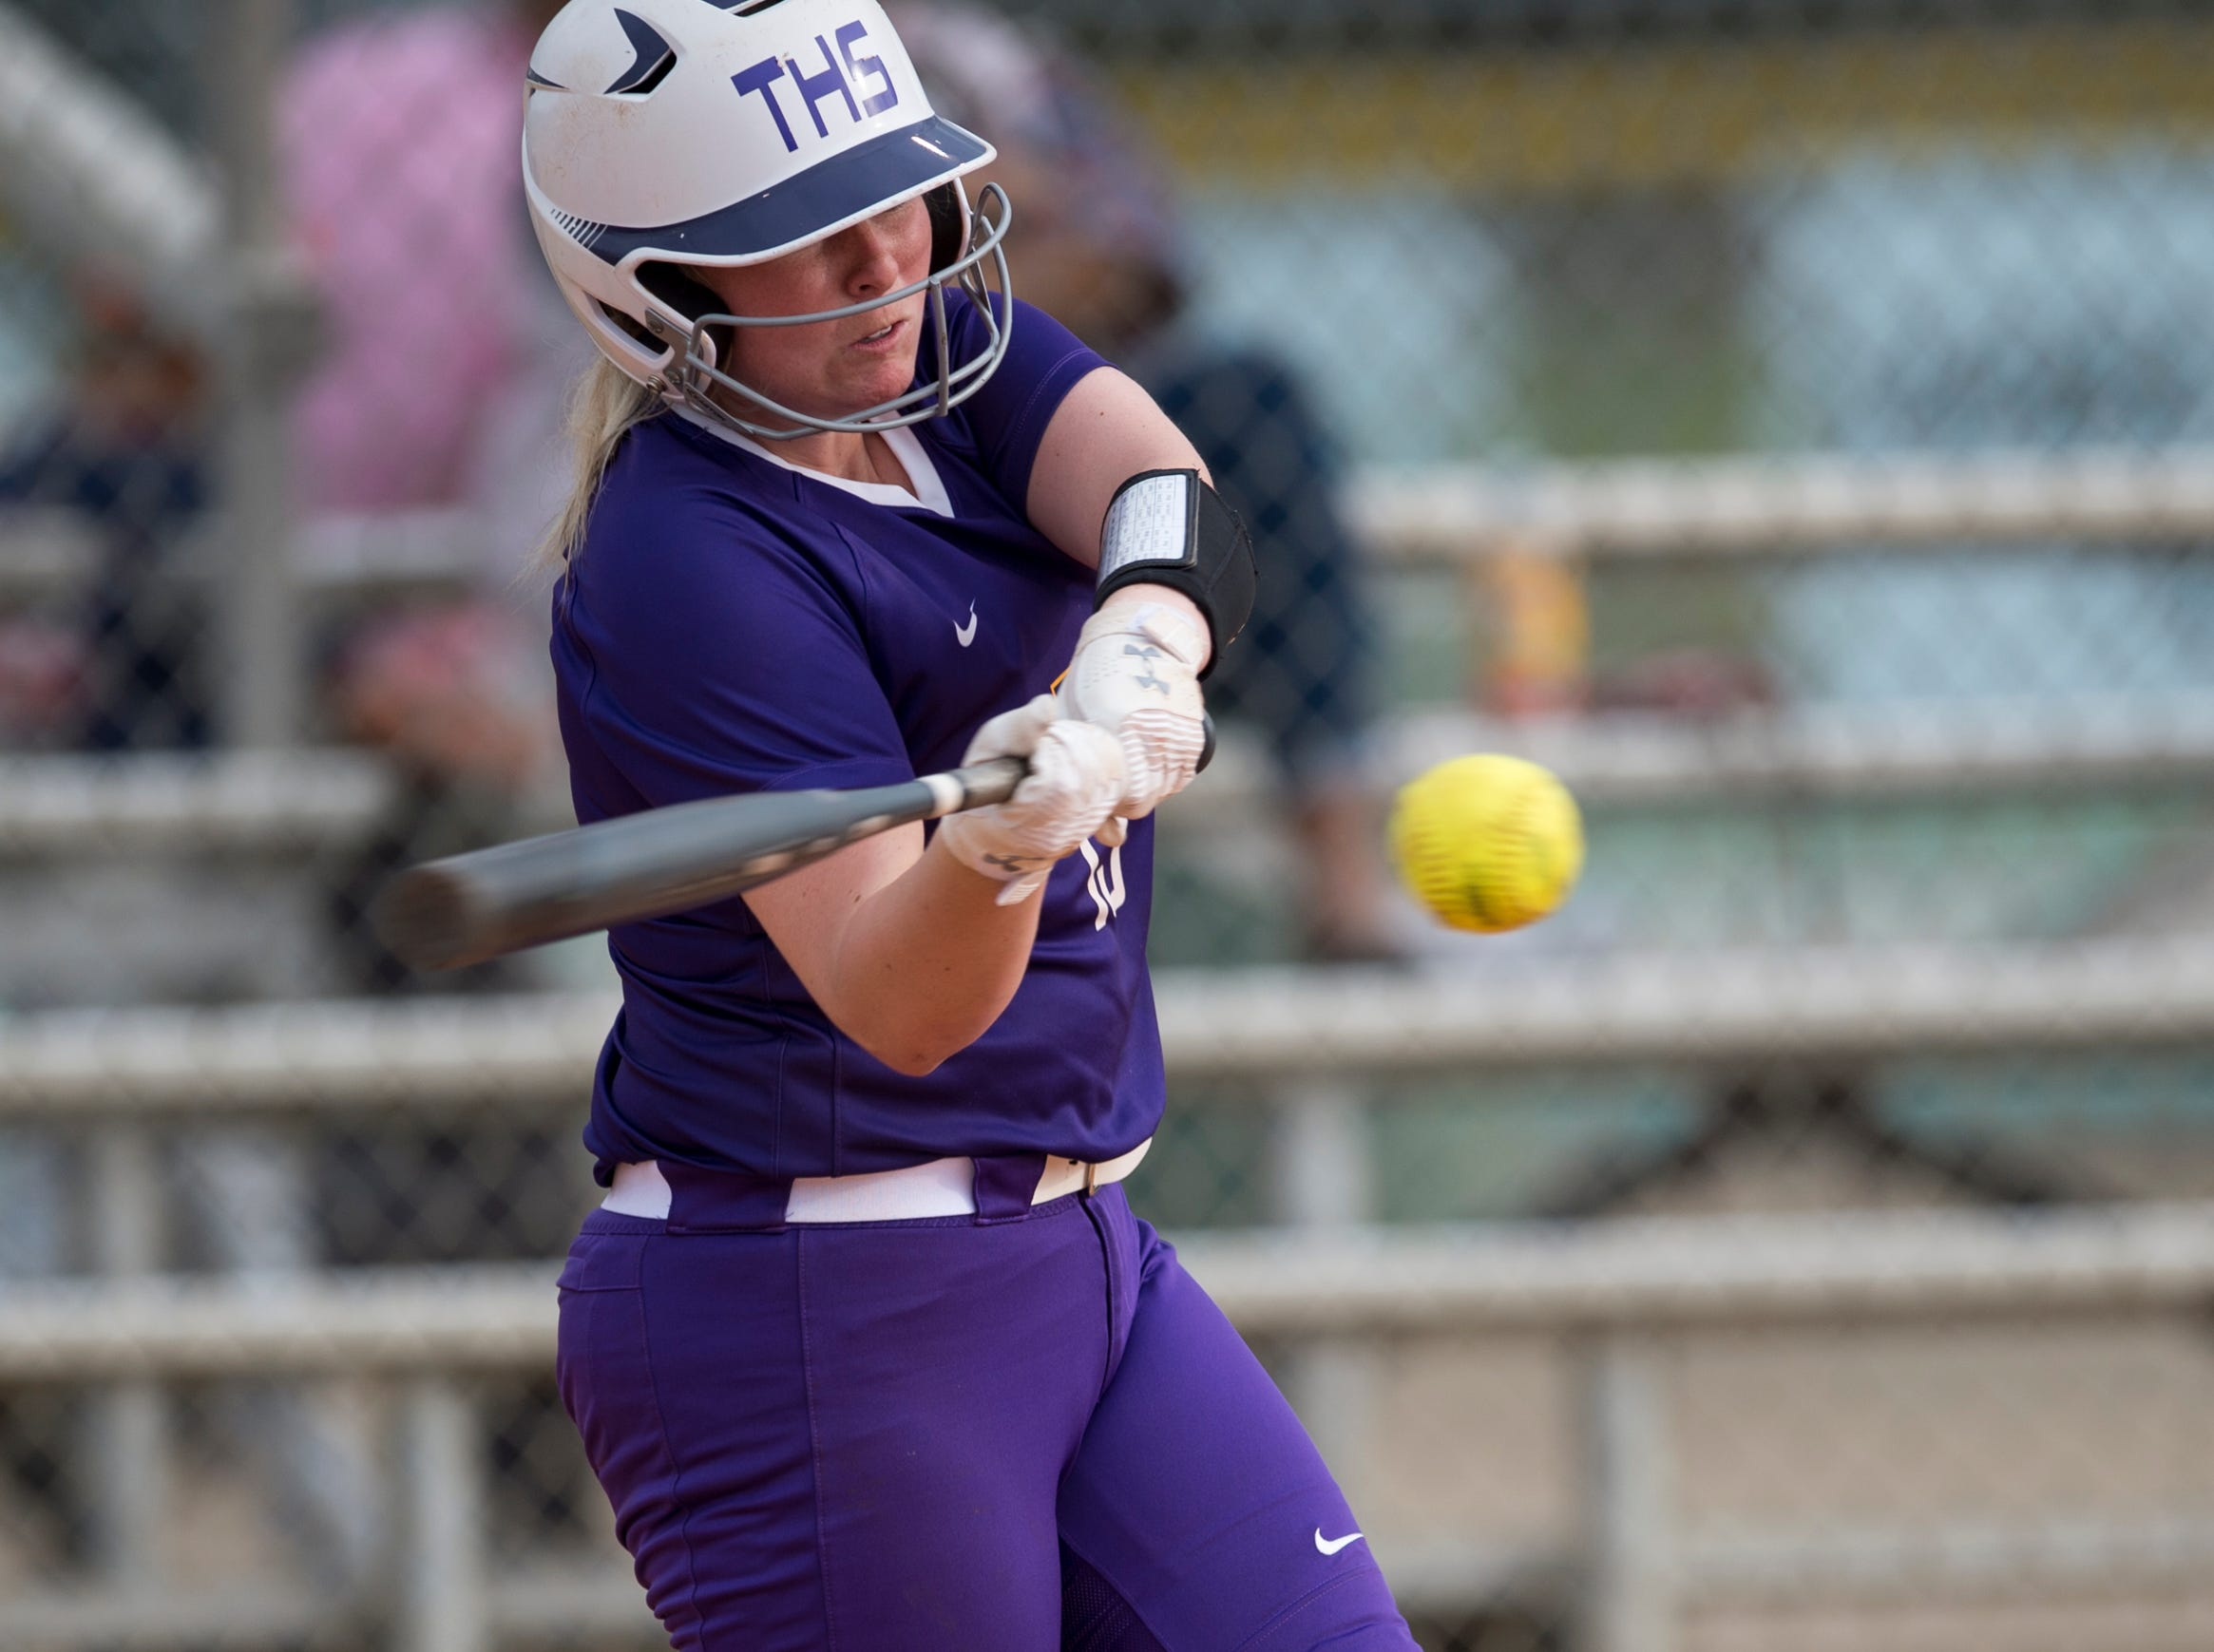 Tallassee's Madelyn Martin (15) swings at the ball at Thompson Park in Montgomery, Ala., on Thursday, March 14, 2019. Tallassee defeated Brew Tech 7-0.